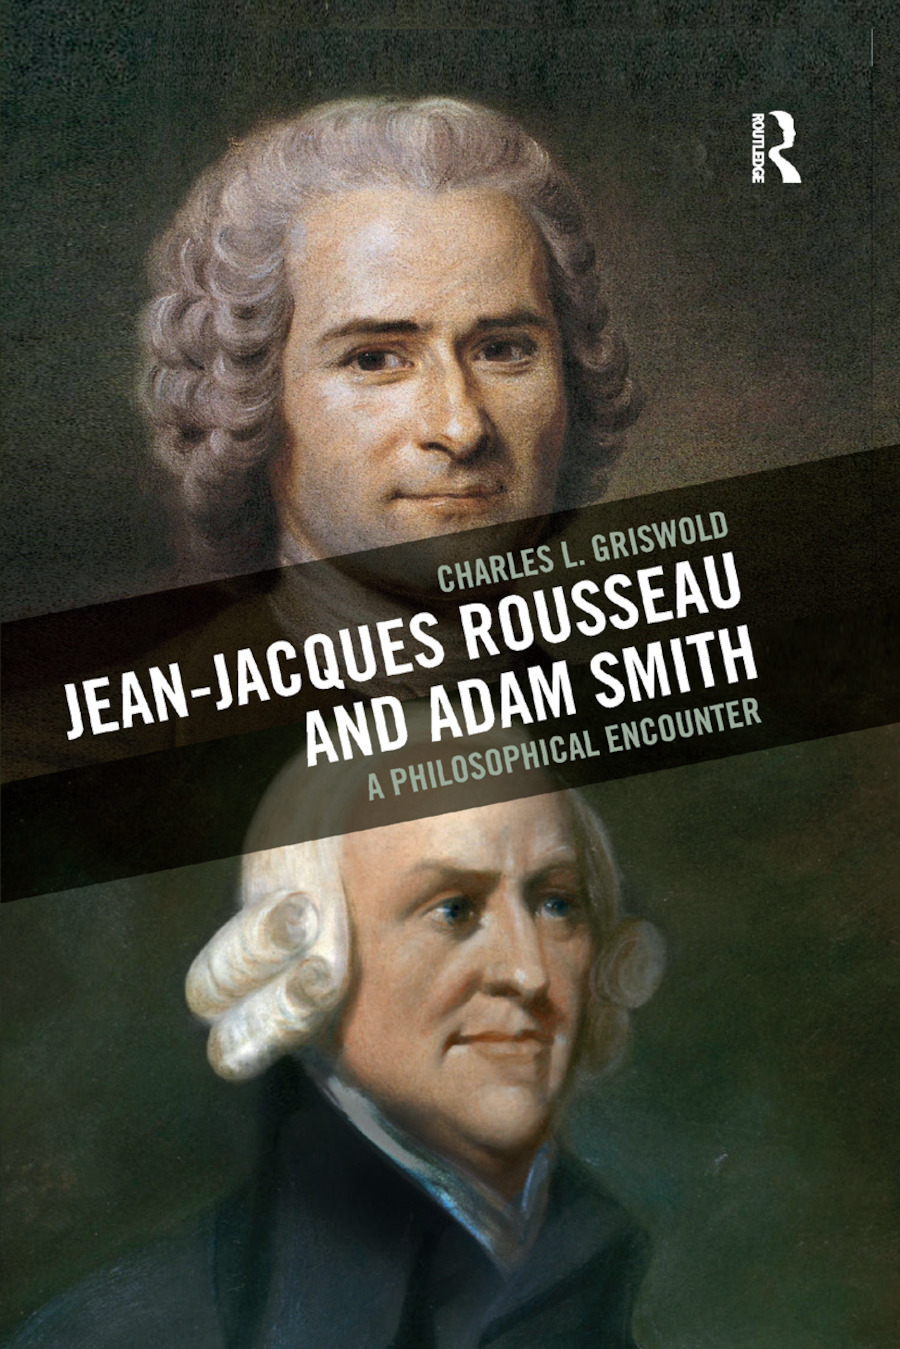 Jean-Jacques Rousseau and Adam Smith: A Philosophical Encounter book cover